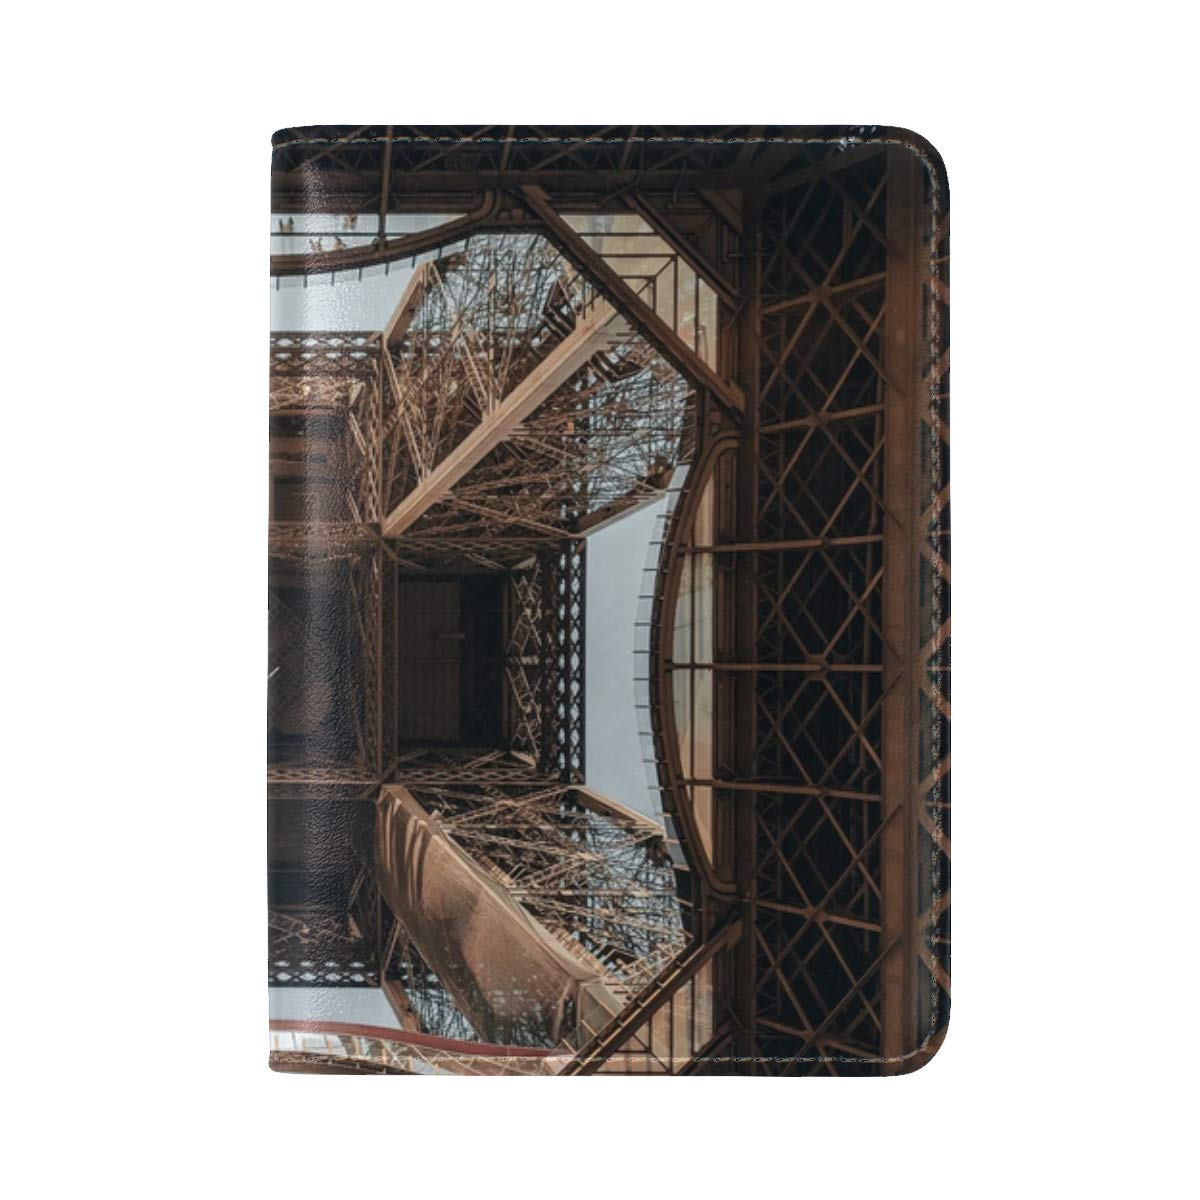 Eiffel Tower Tower Construction Leather Passport Holder Cover Case Travel One Pocket